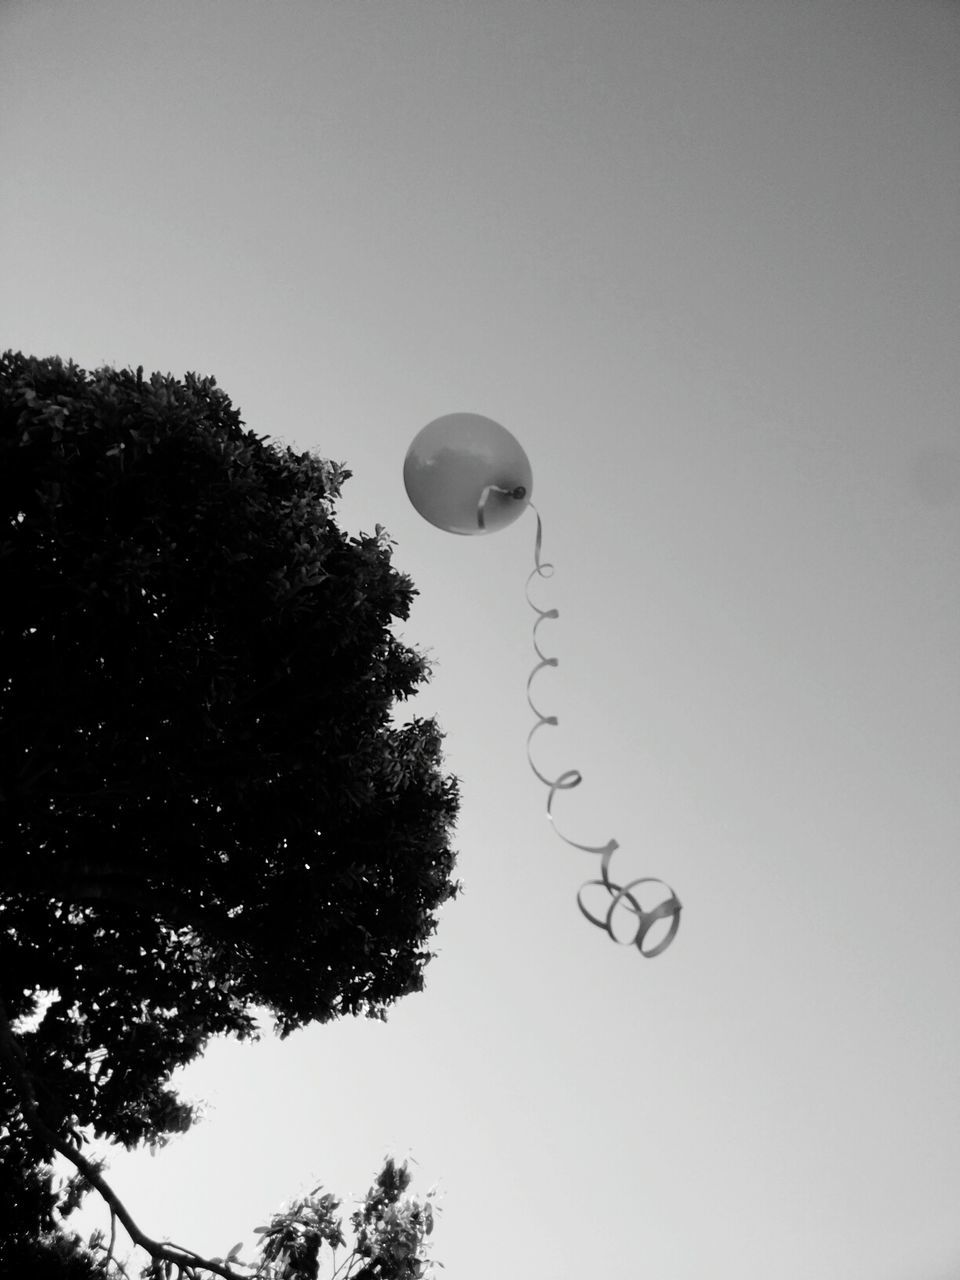 low angle view, tree, no people, mid-air, balloon, flying, clear sky, sky, outdoors, moon, day, helium balloon, nature